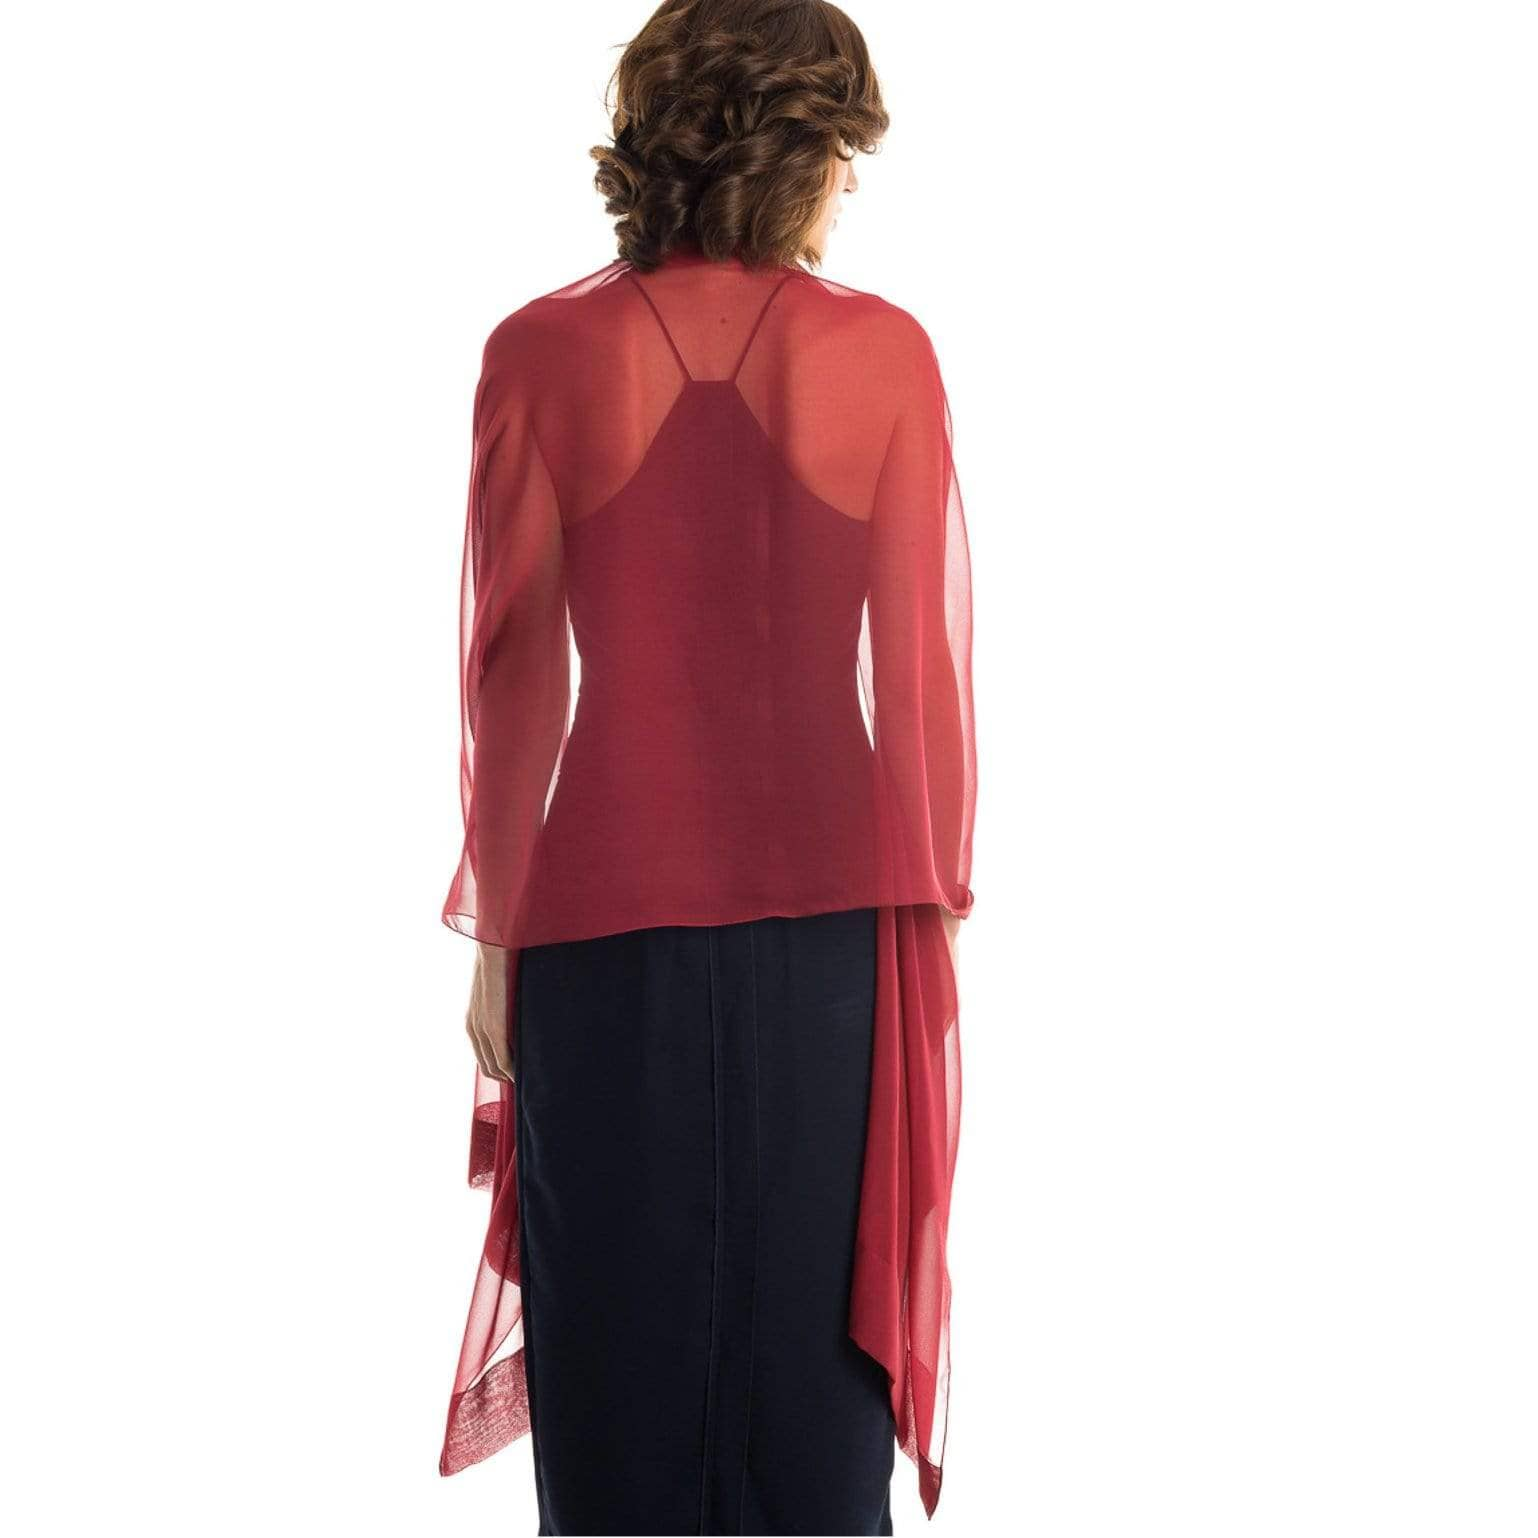 silk chiffon evening wrap